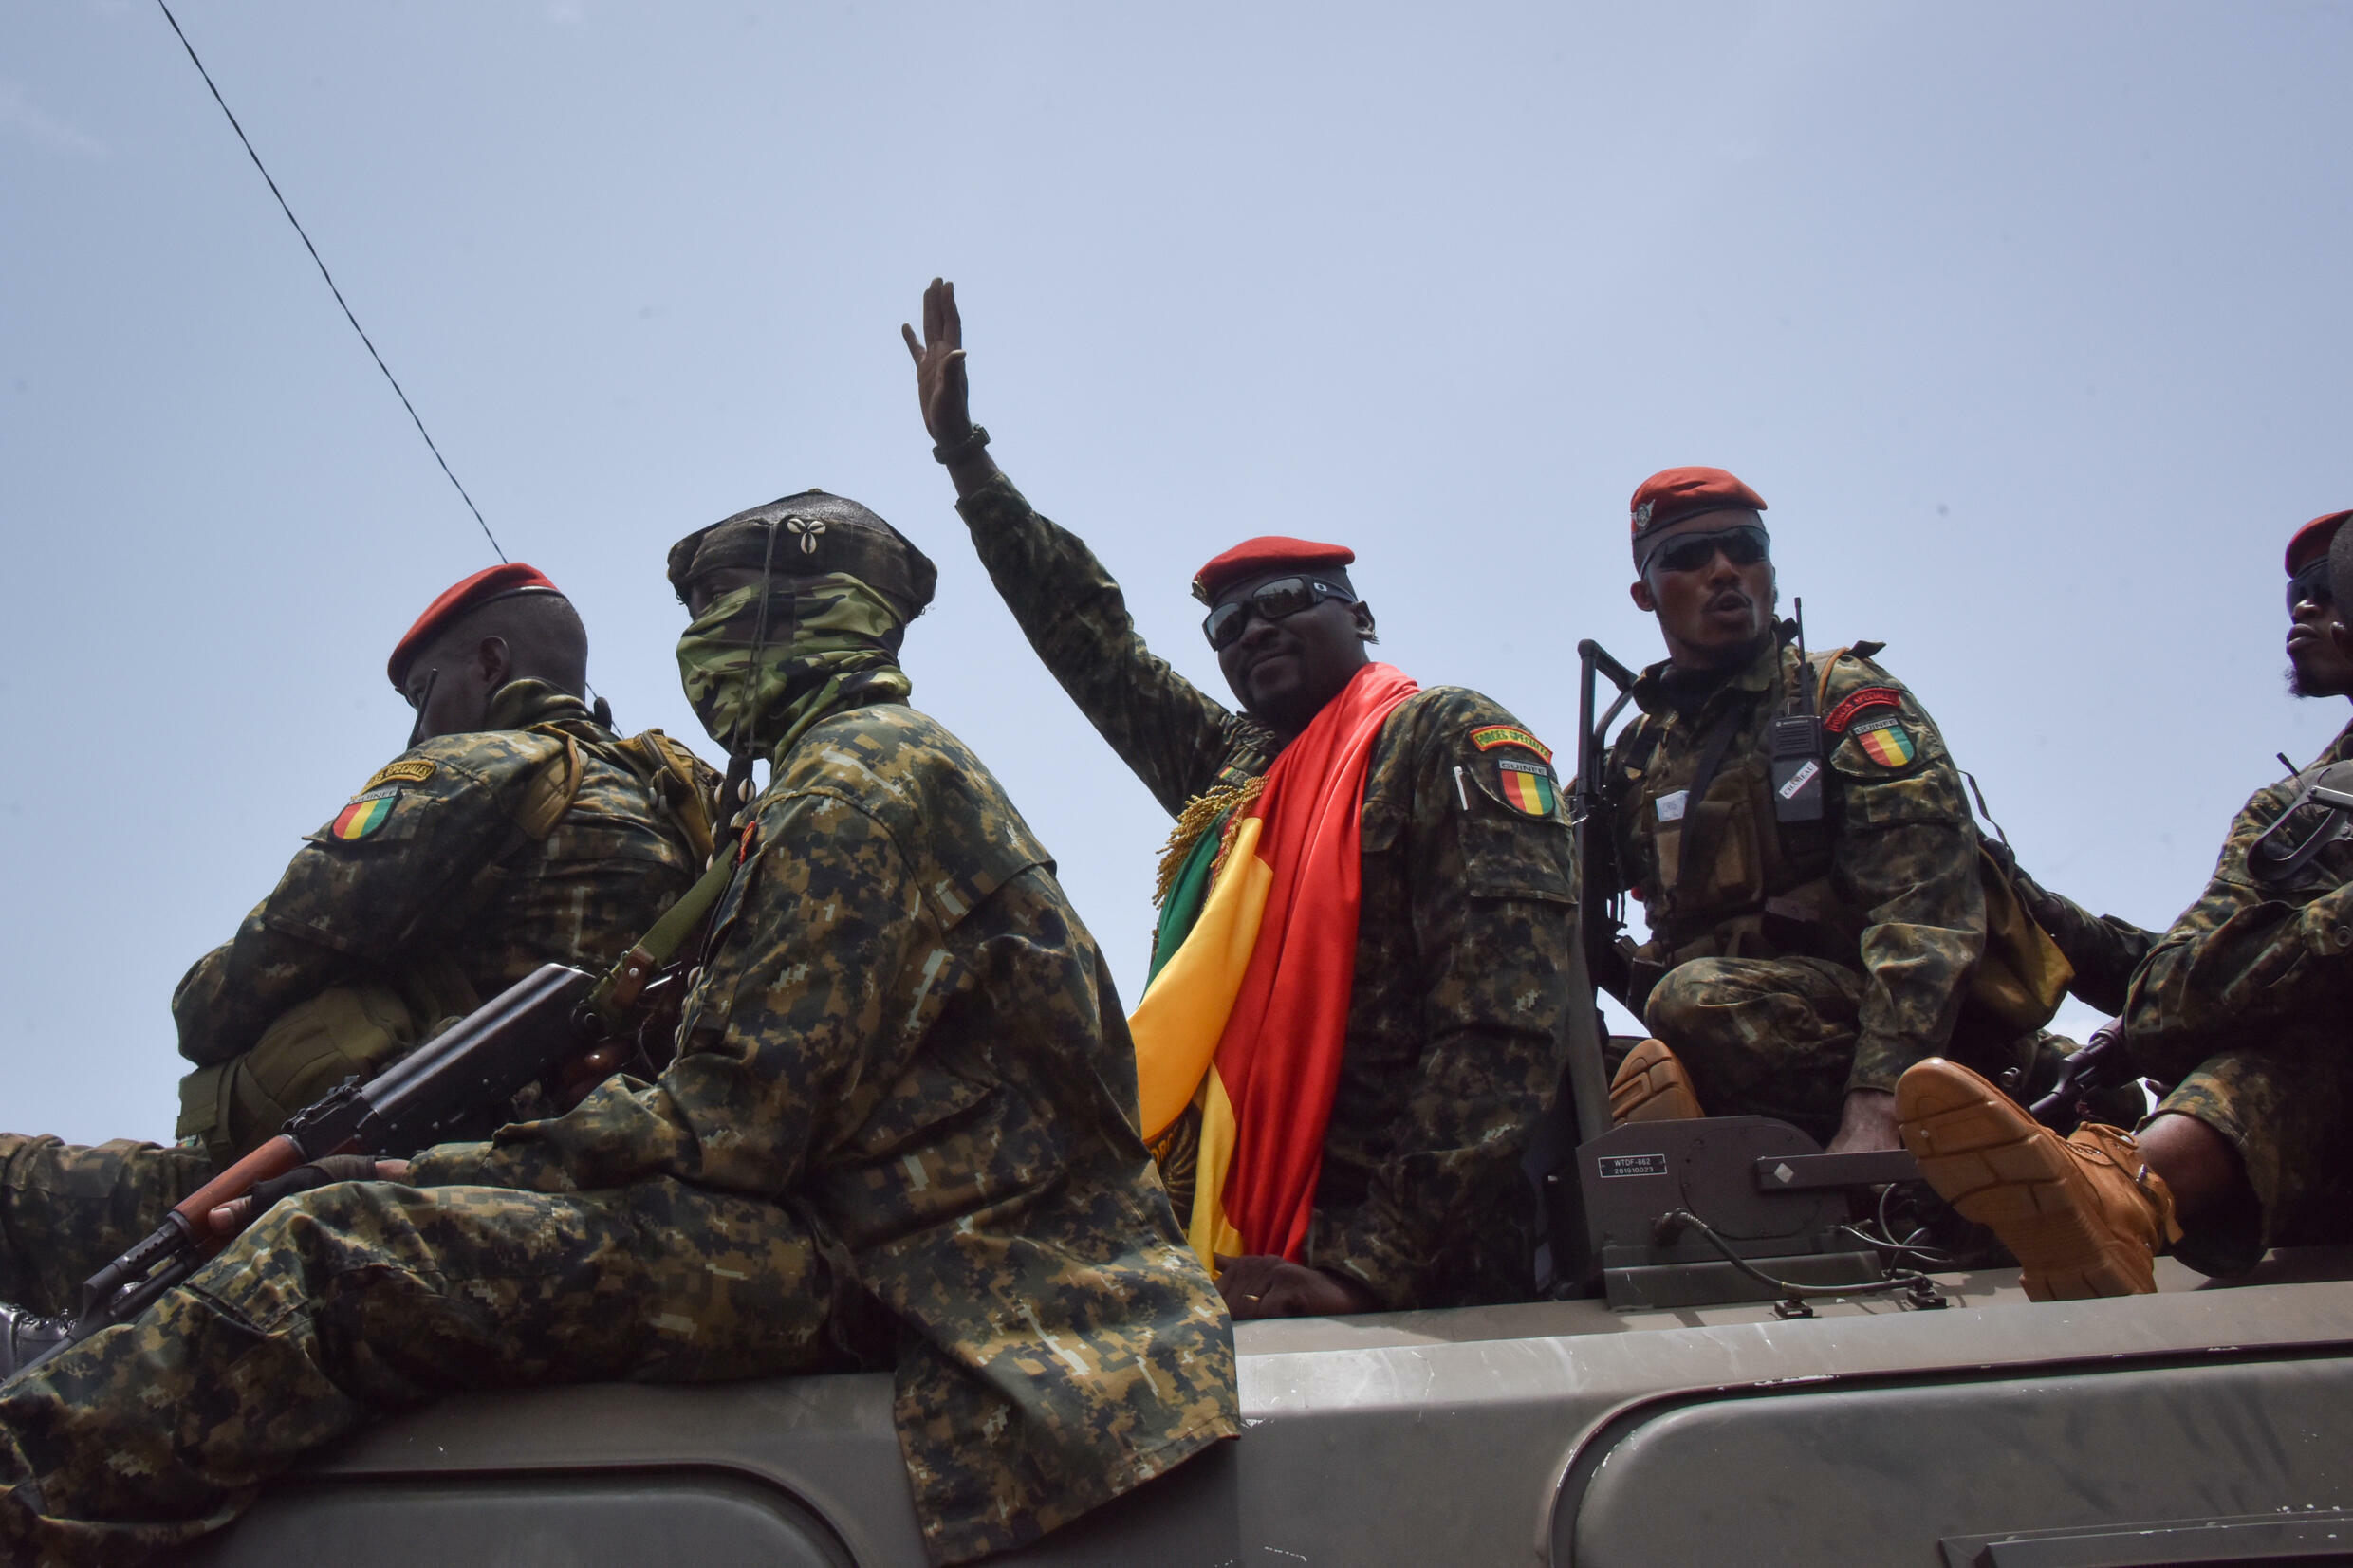 Coup leader Lieutenant Colonel Mamady Doumbouya, centre, waving to the crowd as he arrived at parliament on Monday for a meeting with outgoing ministers